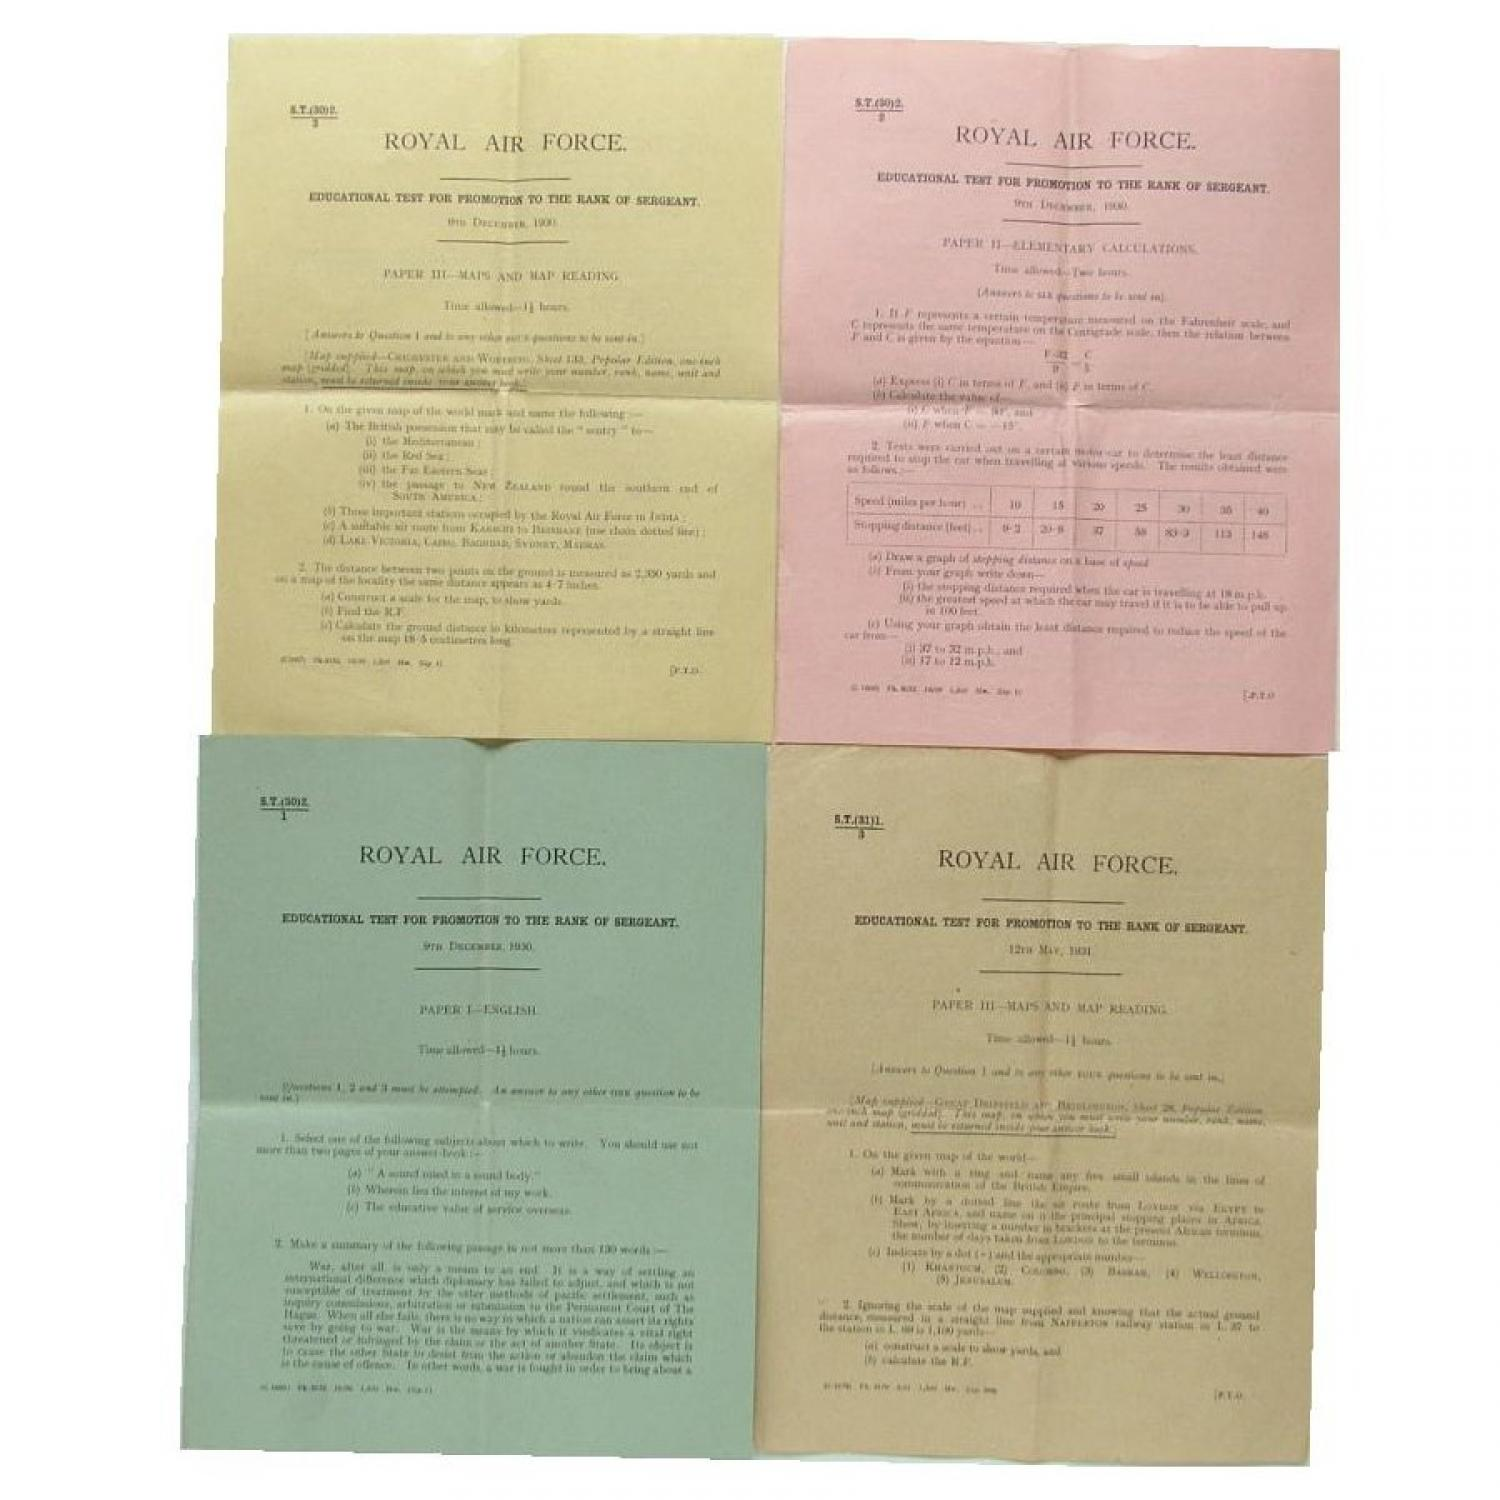 RAF Promotion Test Papers, 1930